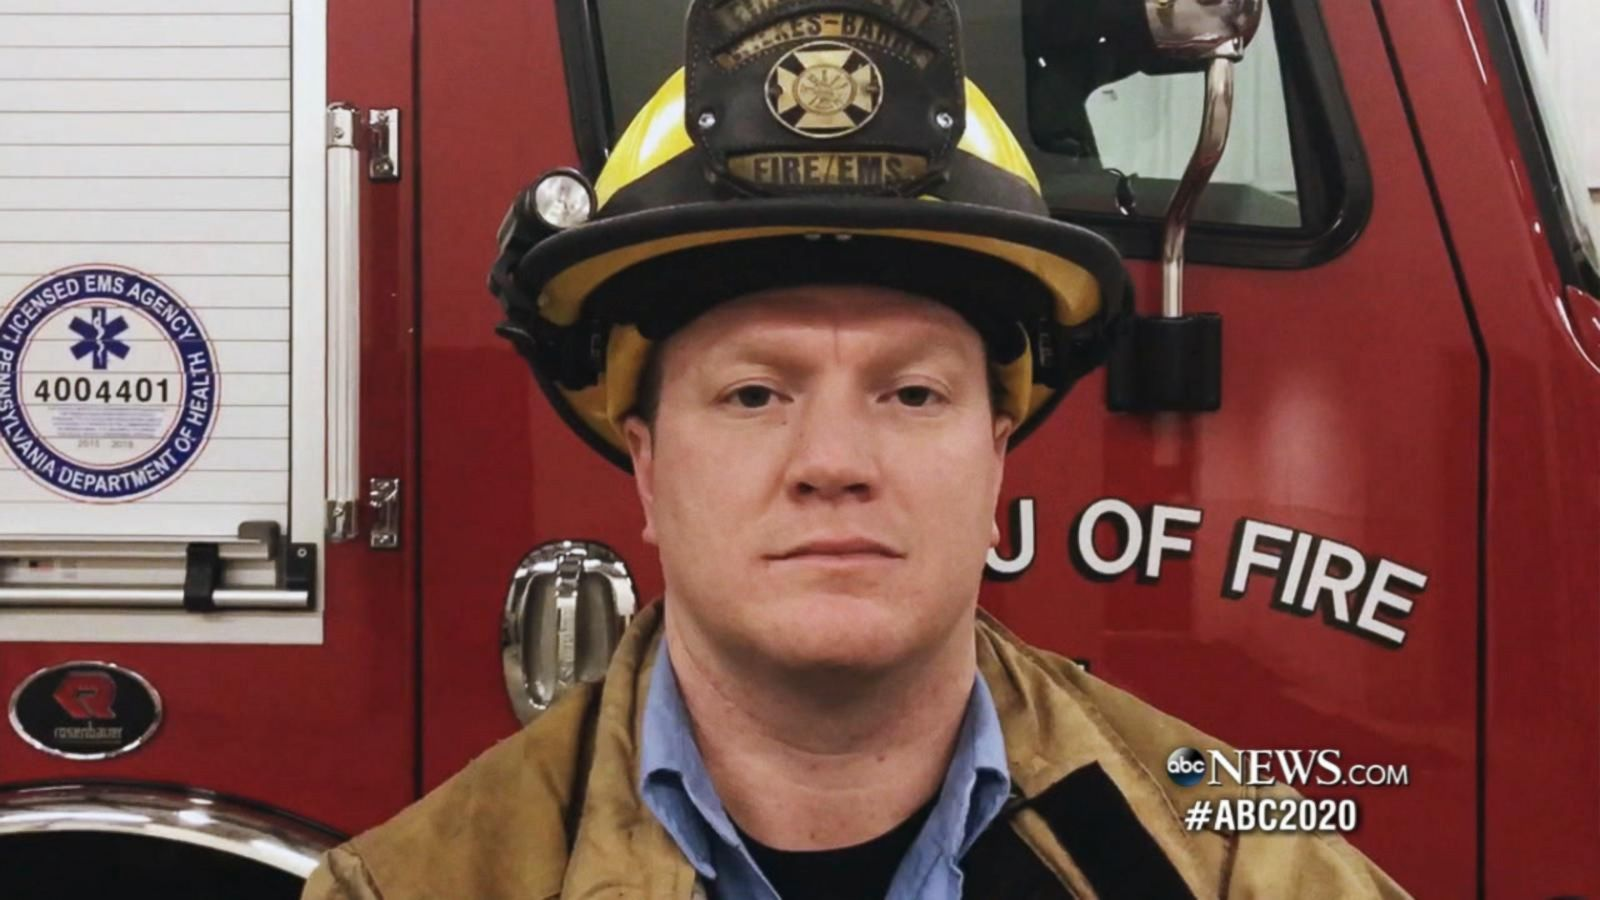 VIDEO: Pennsylvania Firefighter Works Three Jobs to Support His Family: Part 1